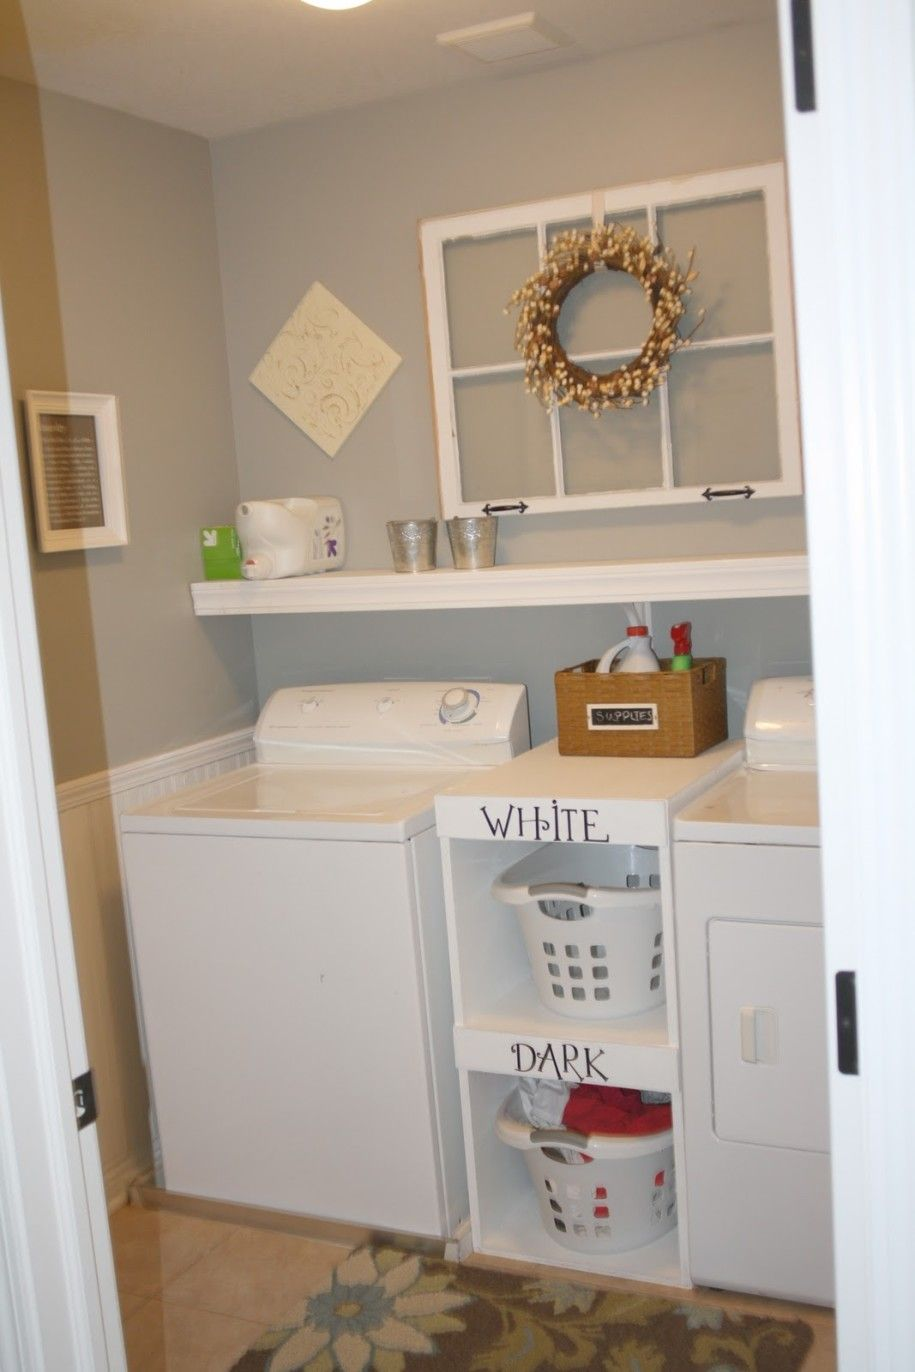 Laundry Room Shelving With Ironing Board And Basket Simple Small Ideas